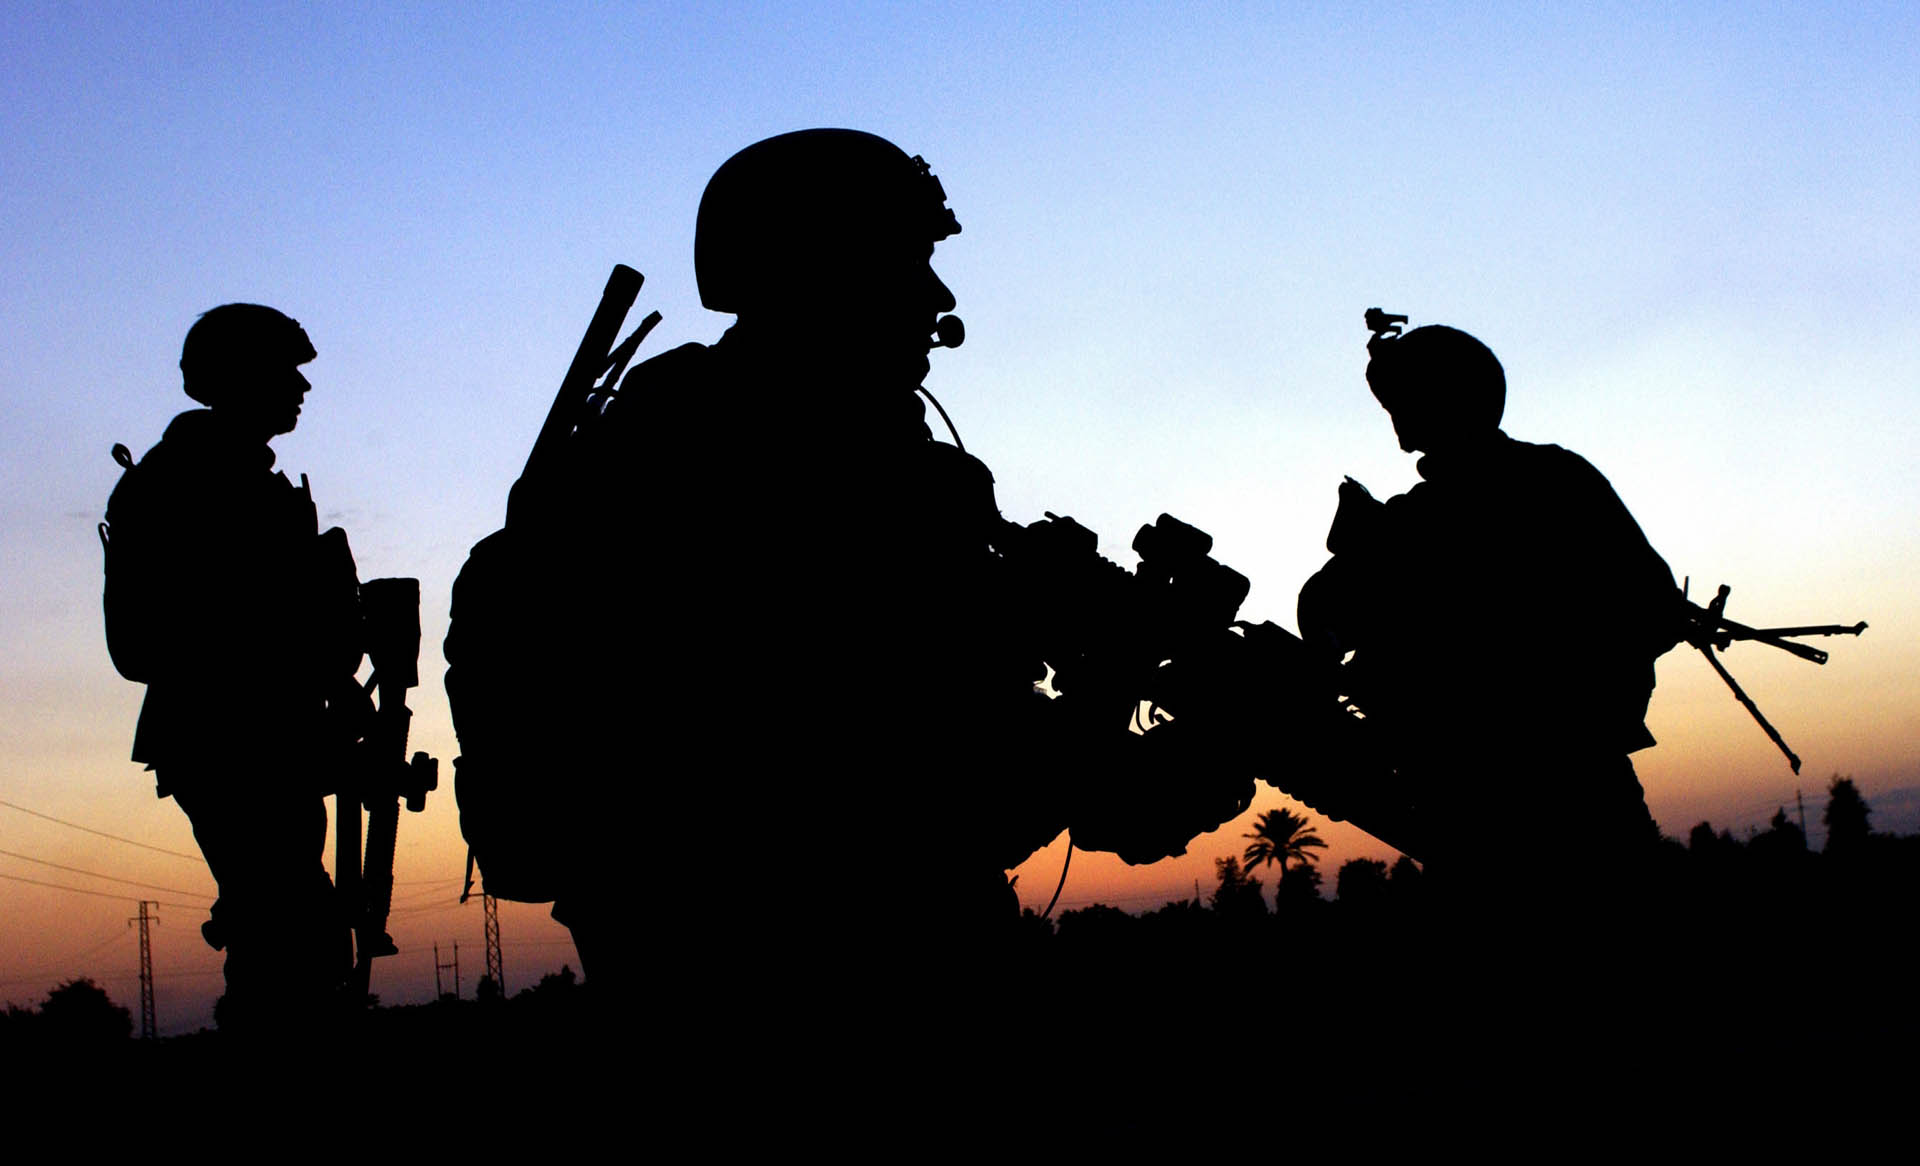 army wallpaper4 Best Army Silhouetted Wallpapers